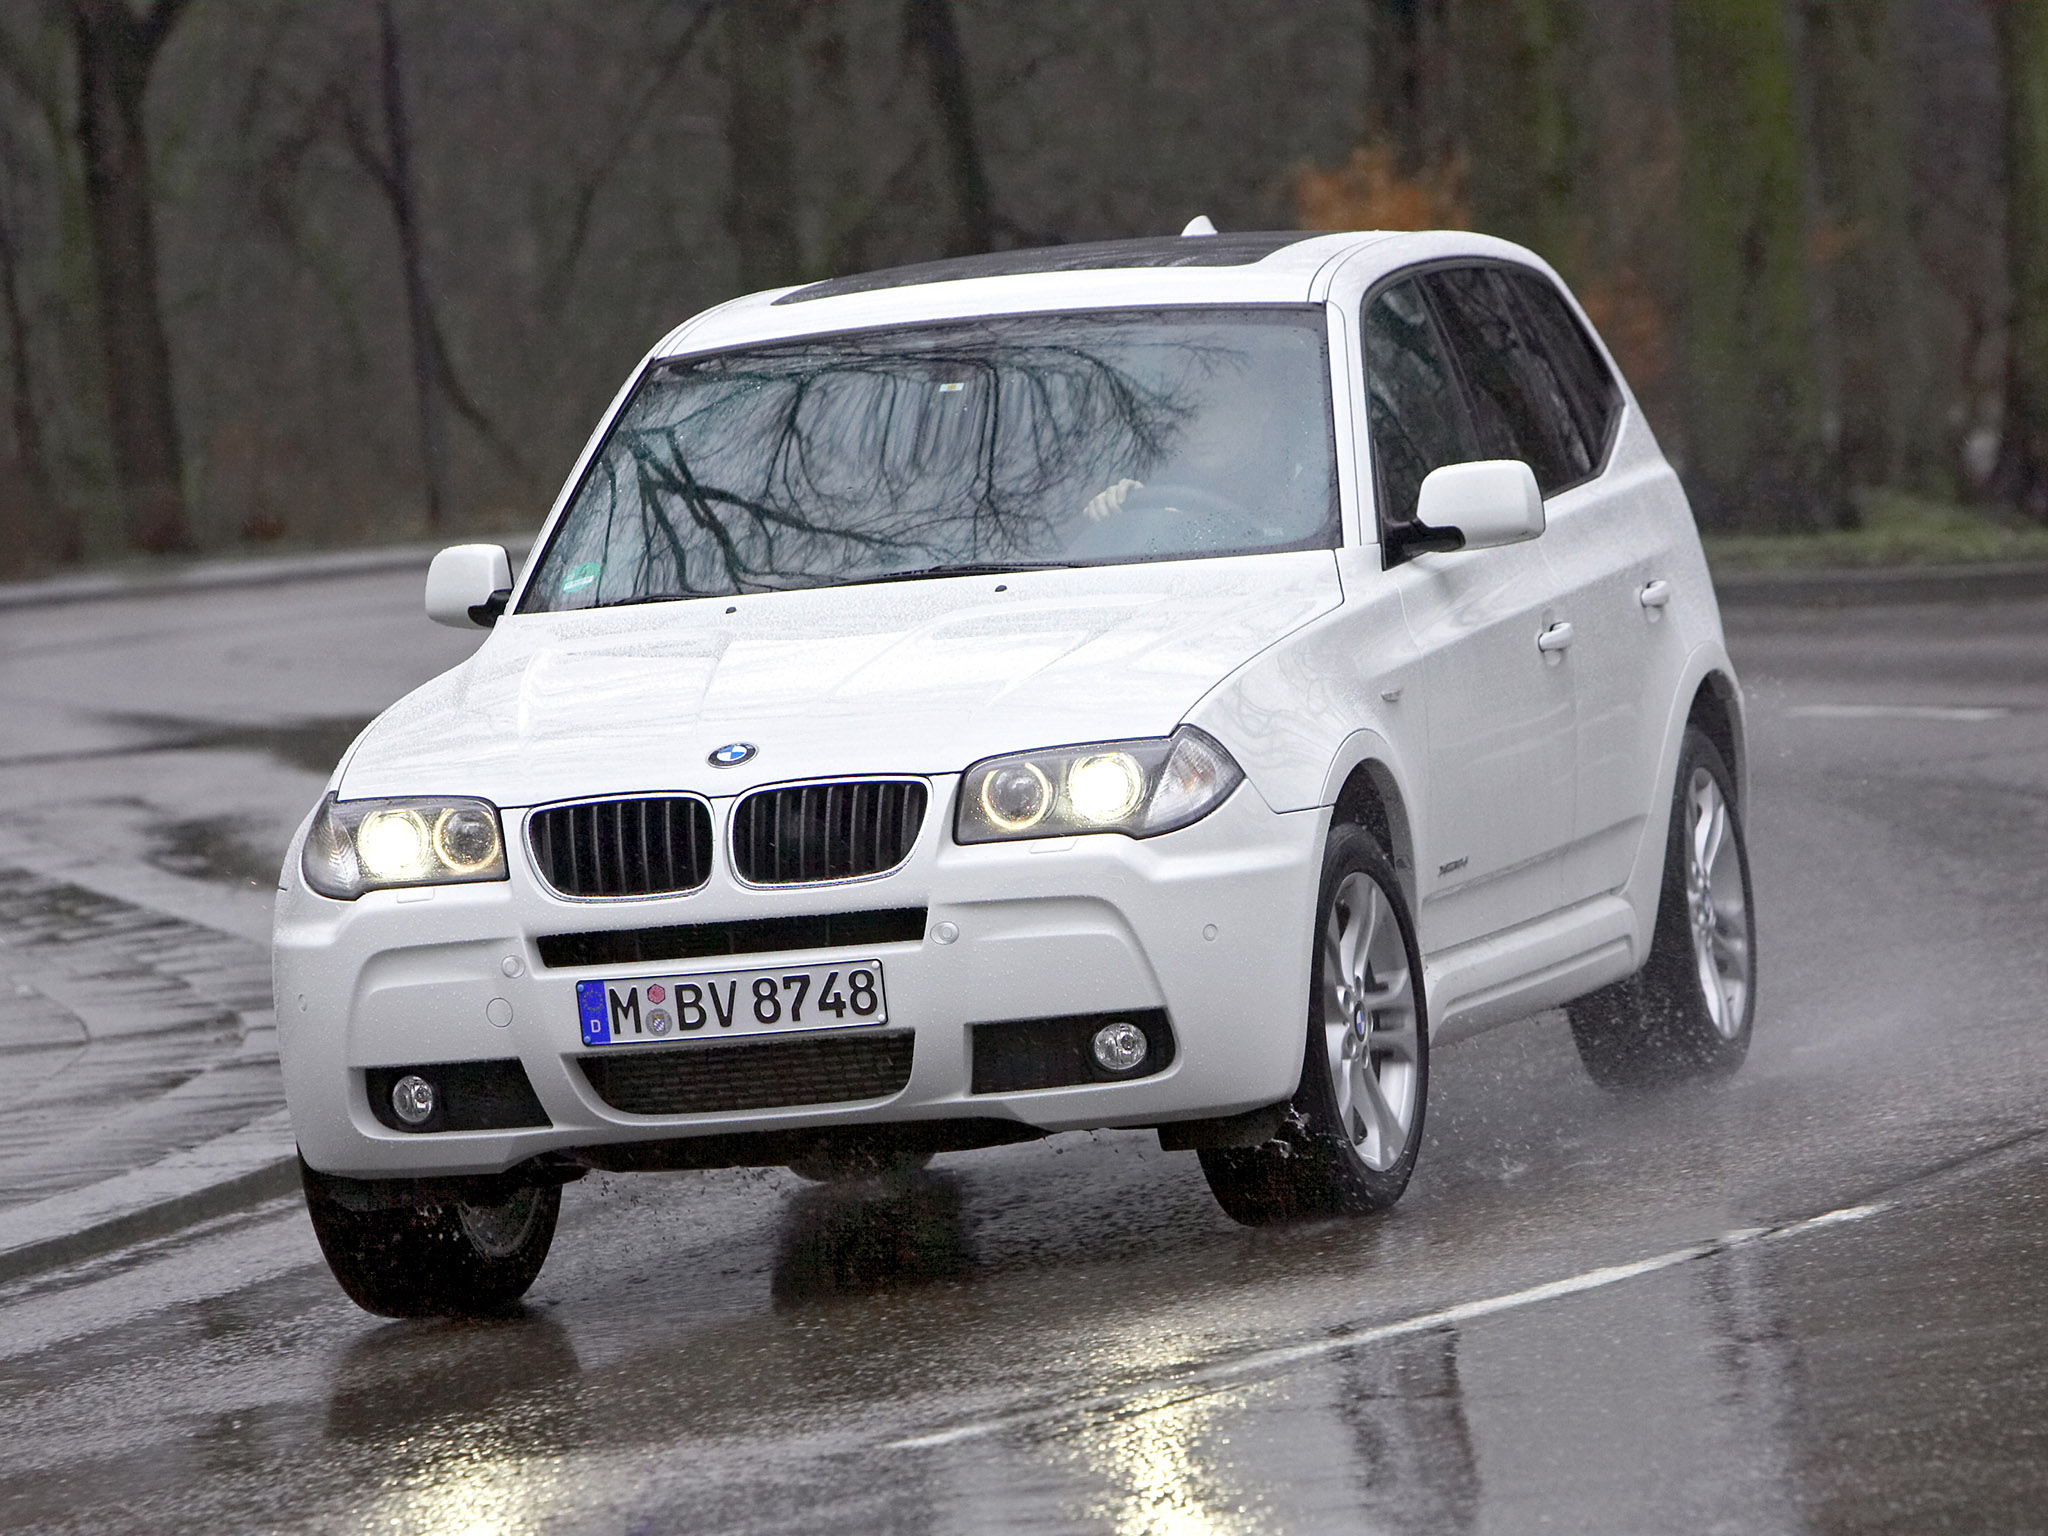 bmw x3 xdrive e83 2009 bmw x3 xdrive e83 2009 photo 07 car in pictures car photo gallery. Black Bedroom Furniture Sets. Home Design Ideas